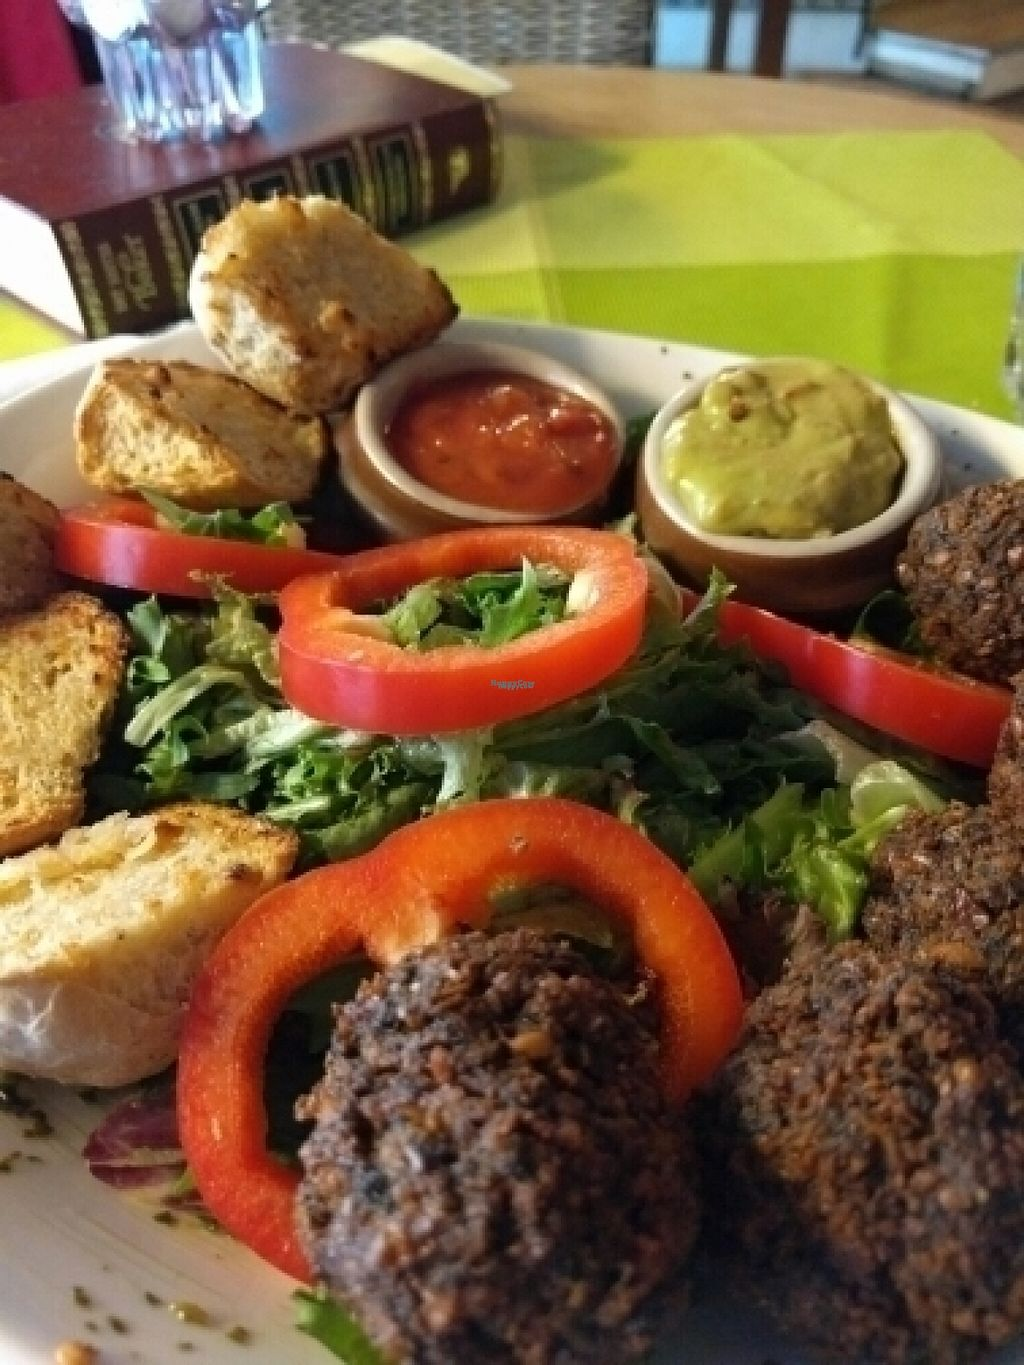 """Photo of CLOSED: Kafe Kafka  by <a href=""""/members/profile/L2Lulu"""">L2Lulu</a> <br/>vegan falafel salad... with guacamole and salsa <br/> August 16, 2016  - <a href='/contact/abuse/image/65142/169311'>Report</a>"""